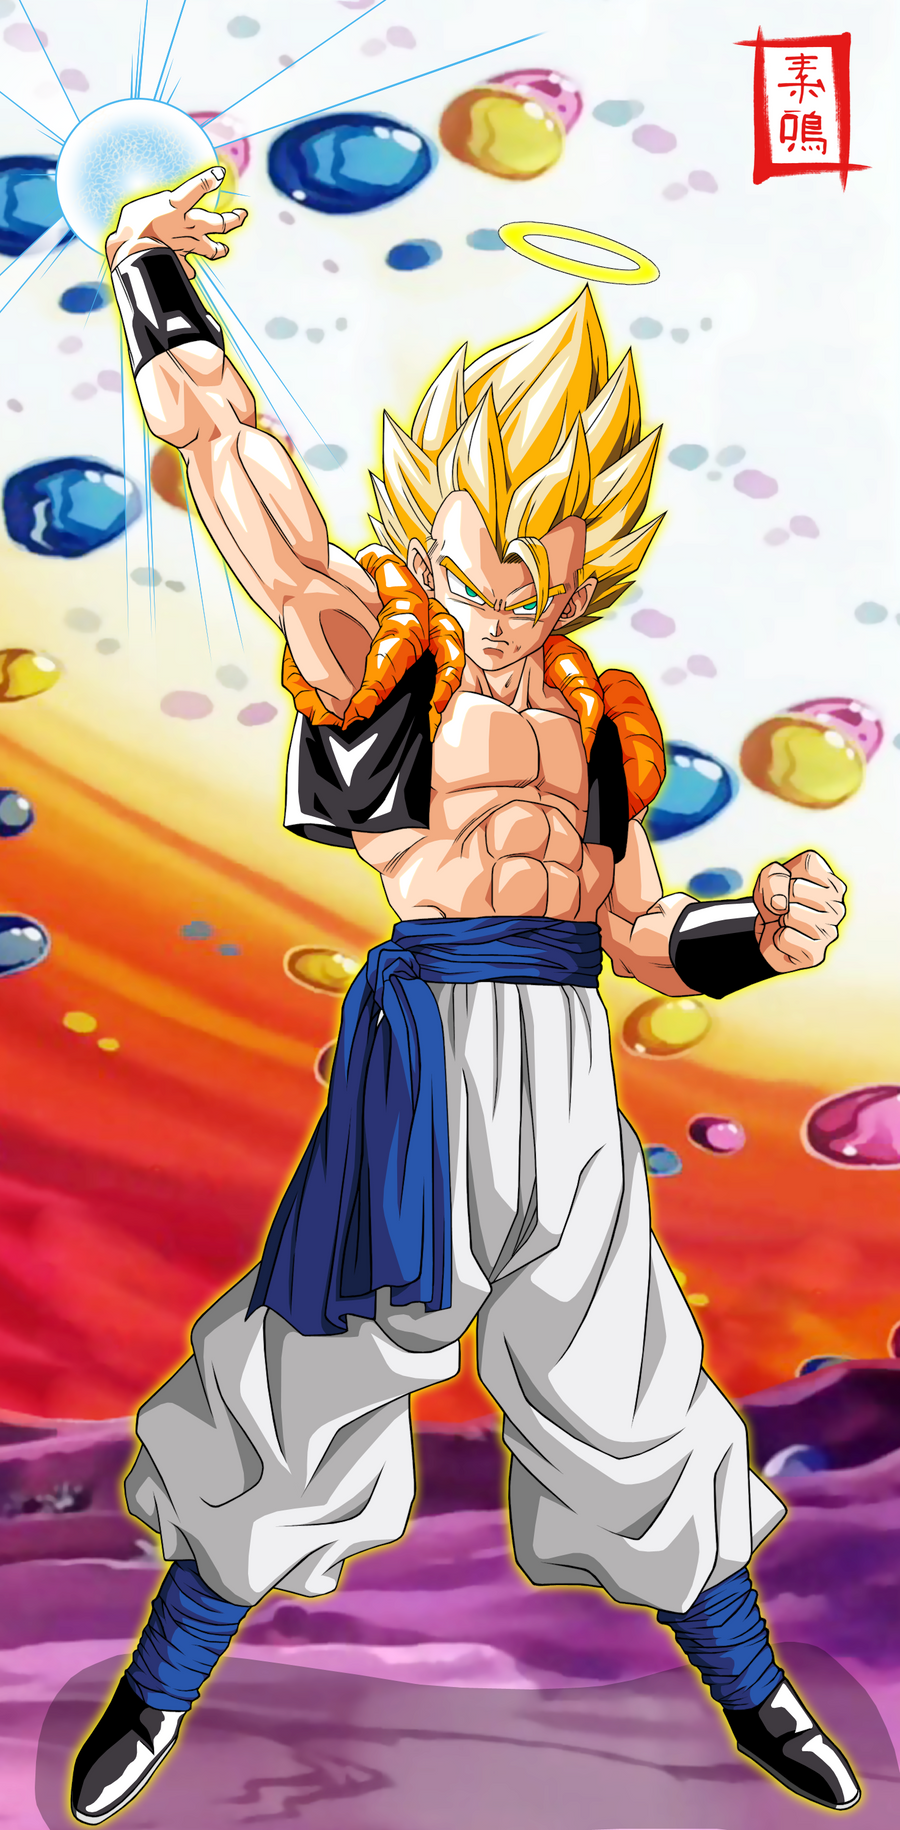 Imagenes HD de Dragon Ball